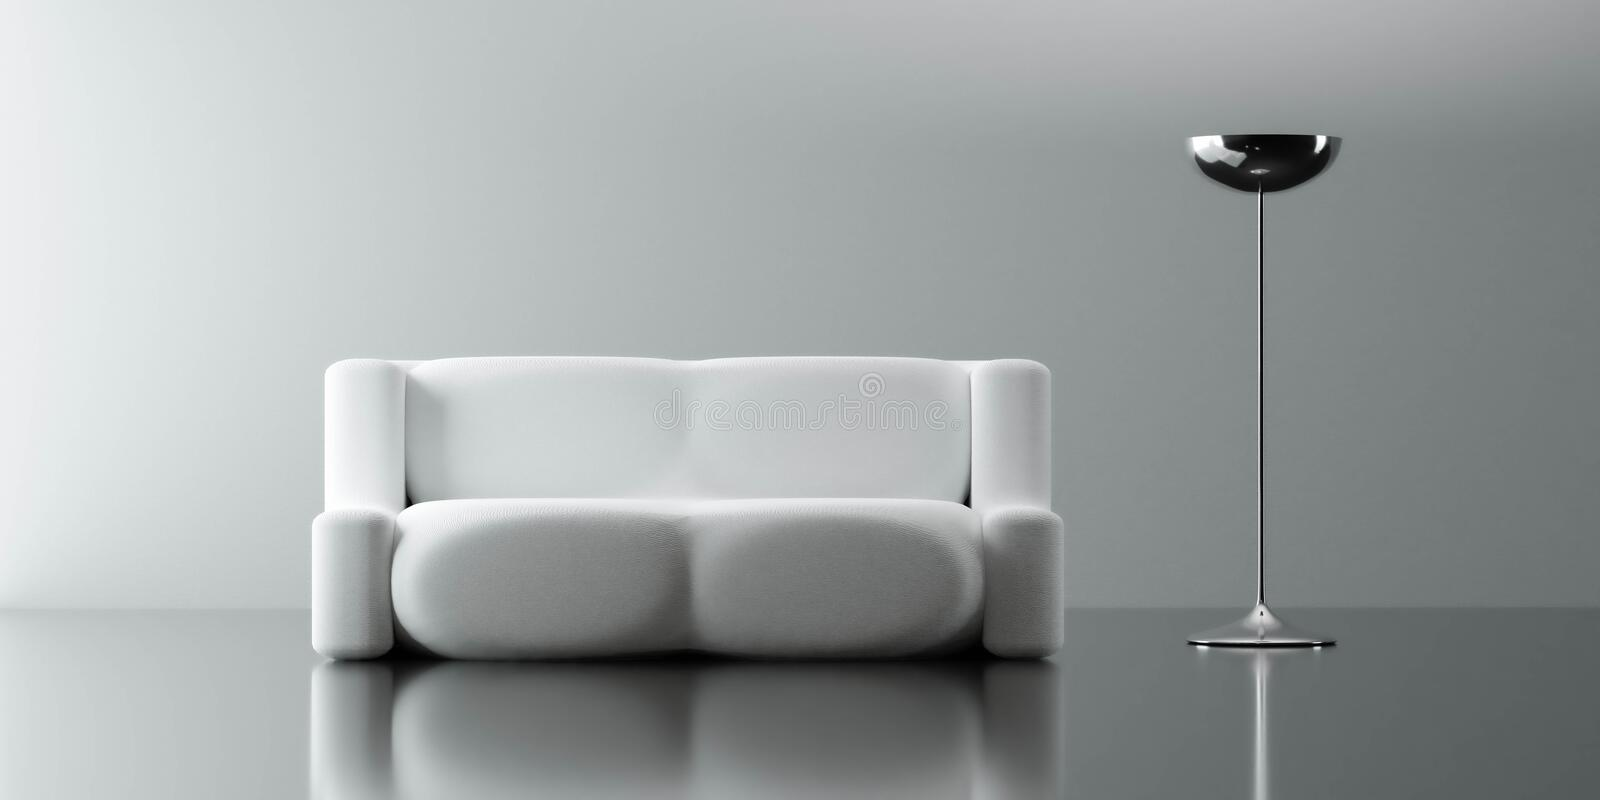 A Modern Couch With Futuristic Lamp Modern Design Living Room Interior With Dark Reflection Floor 3d Render Illustration Stock Illustration Illustration Of Comfortable Cozy 205288358